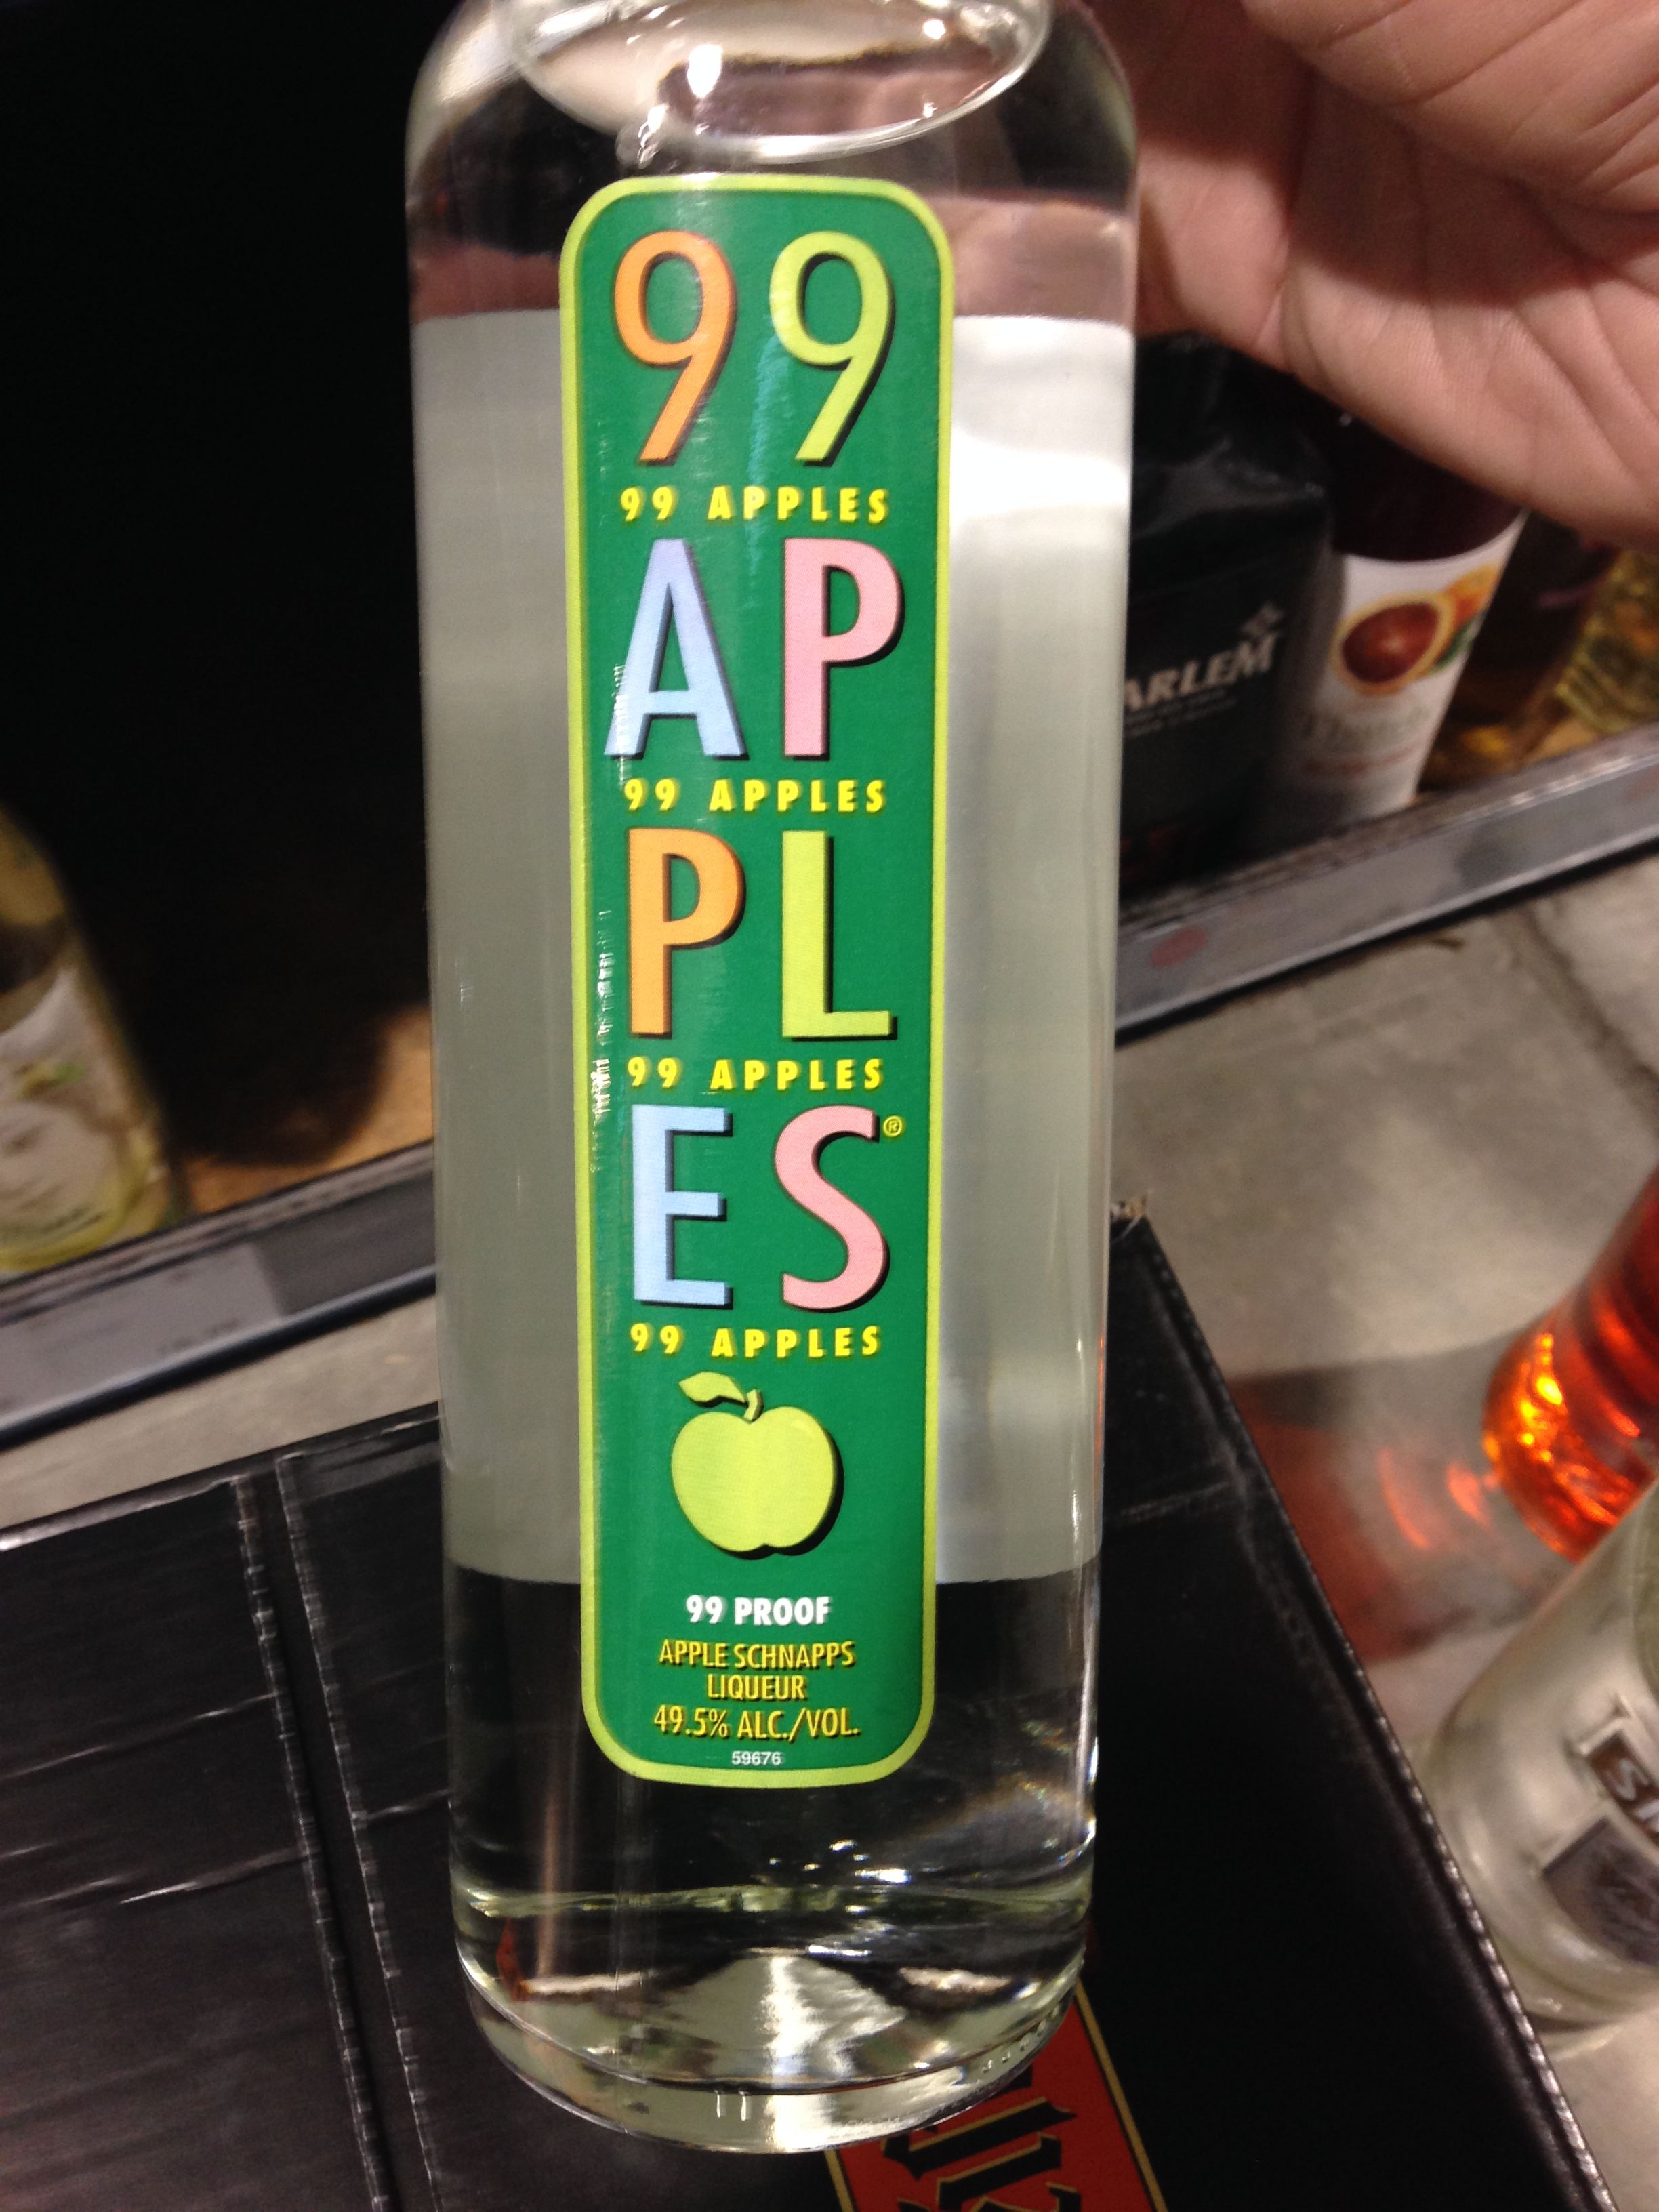 Not Really The Best Replacement For Apple Schnapps Although It Did Have Its Merits